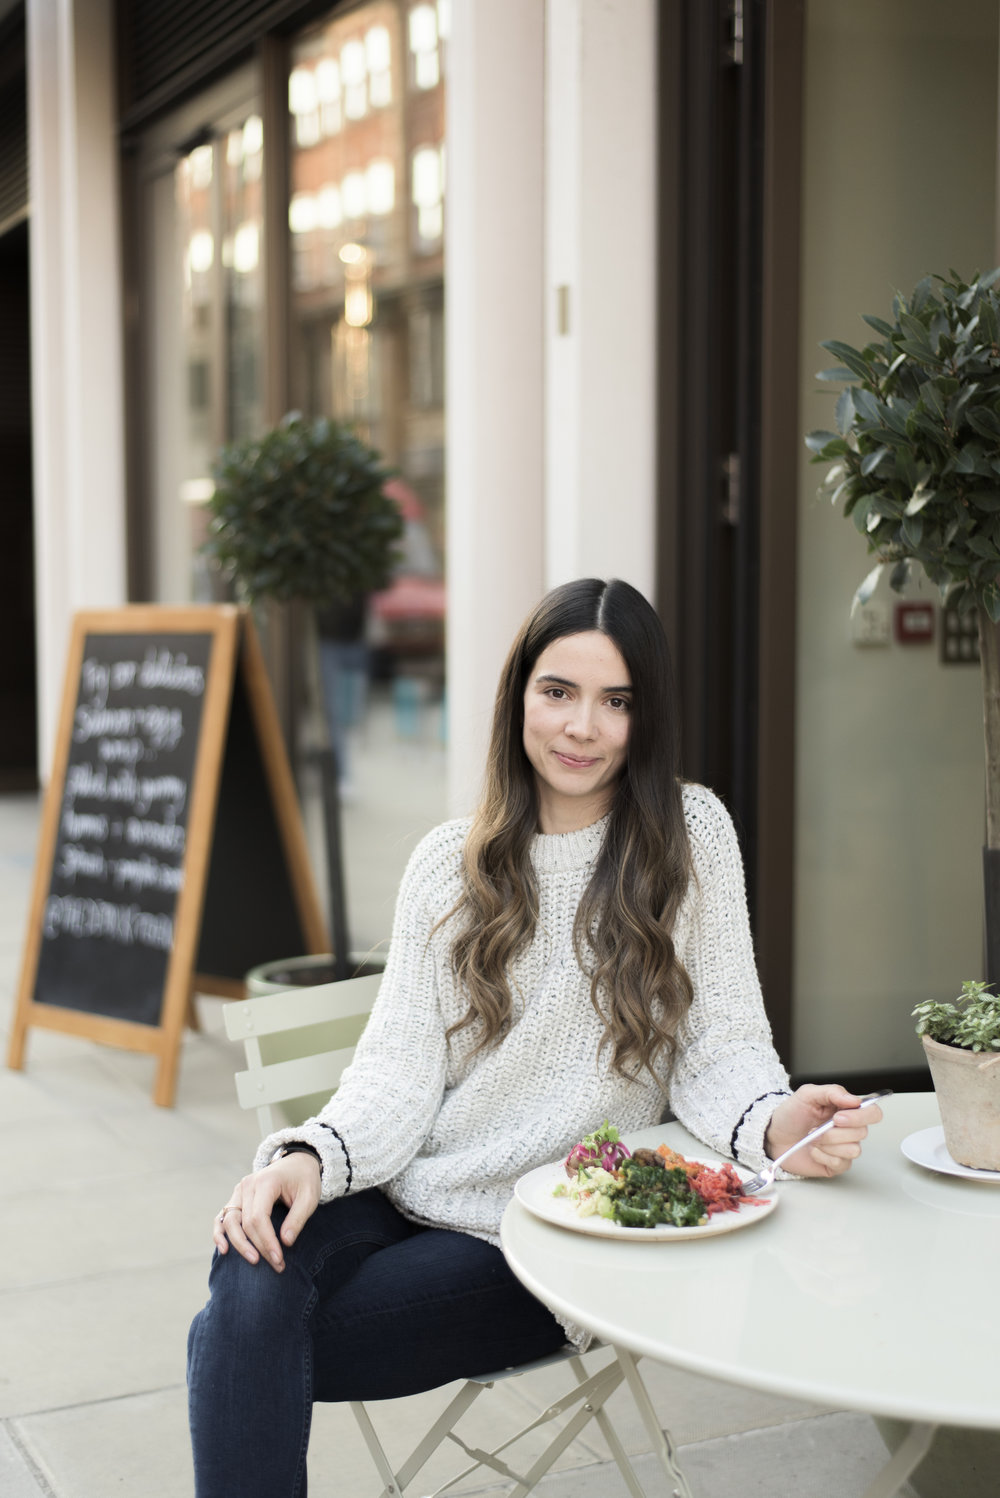 Image: Lily, Founder of Detox Kitchen